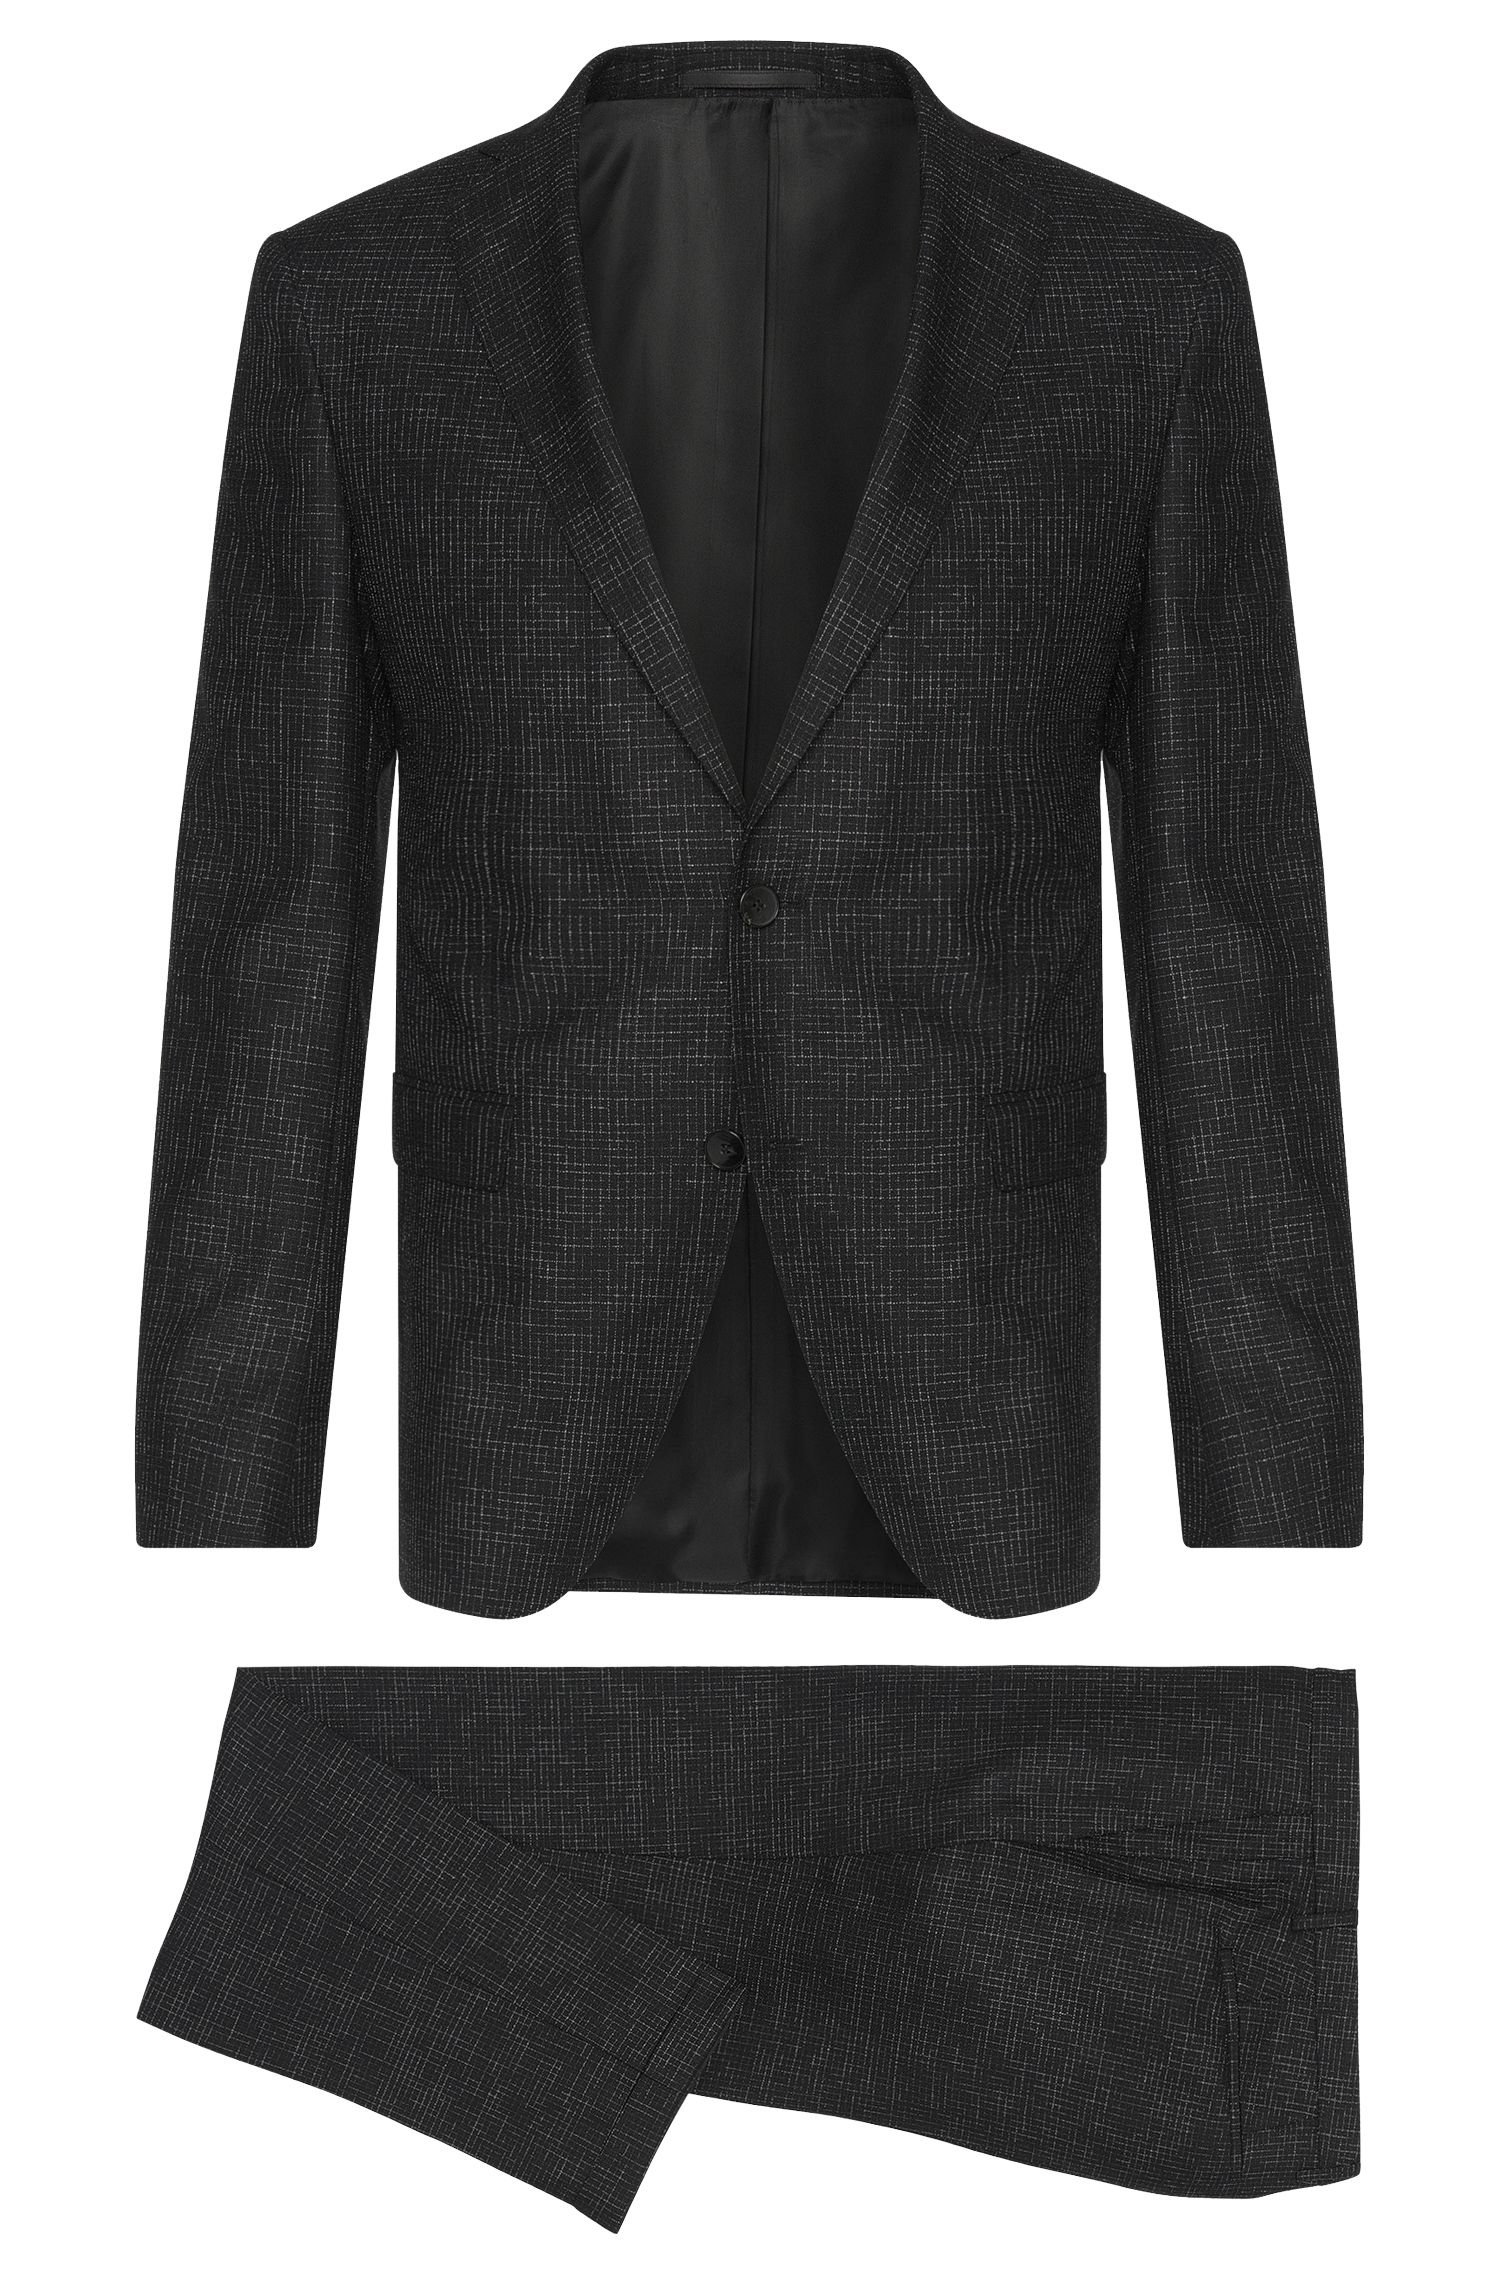 Metallic Super 100 Italian Virgin Wool Suit, Extra-Slim Fit | Reyno/Wave, Black